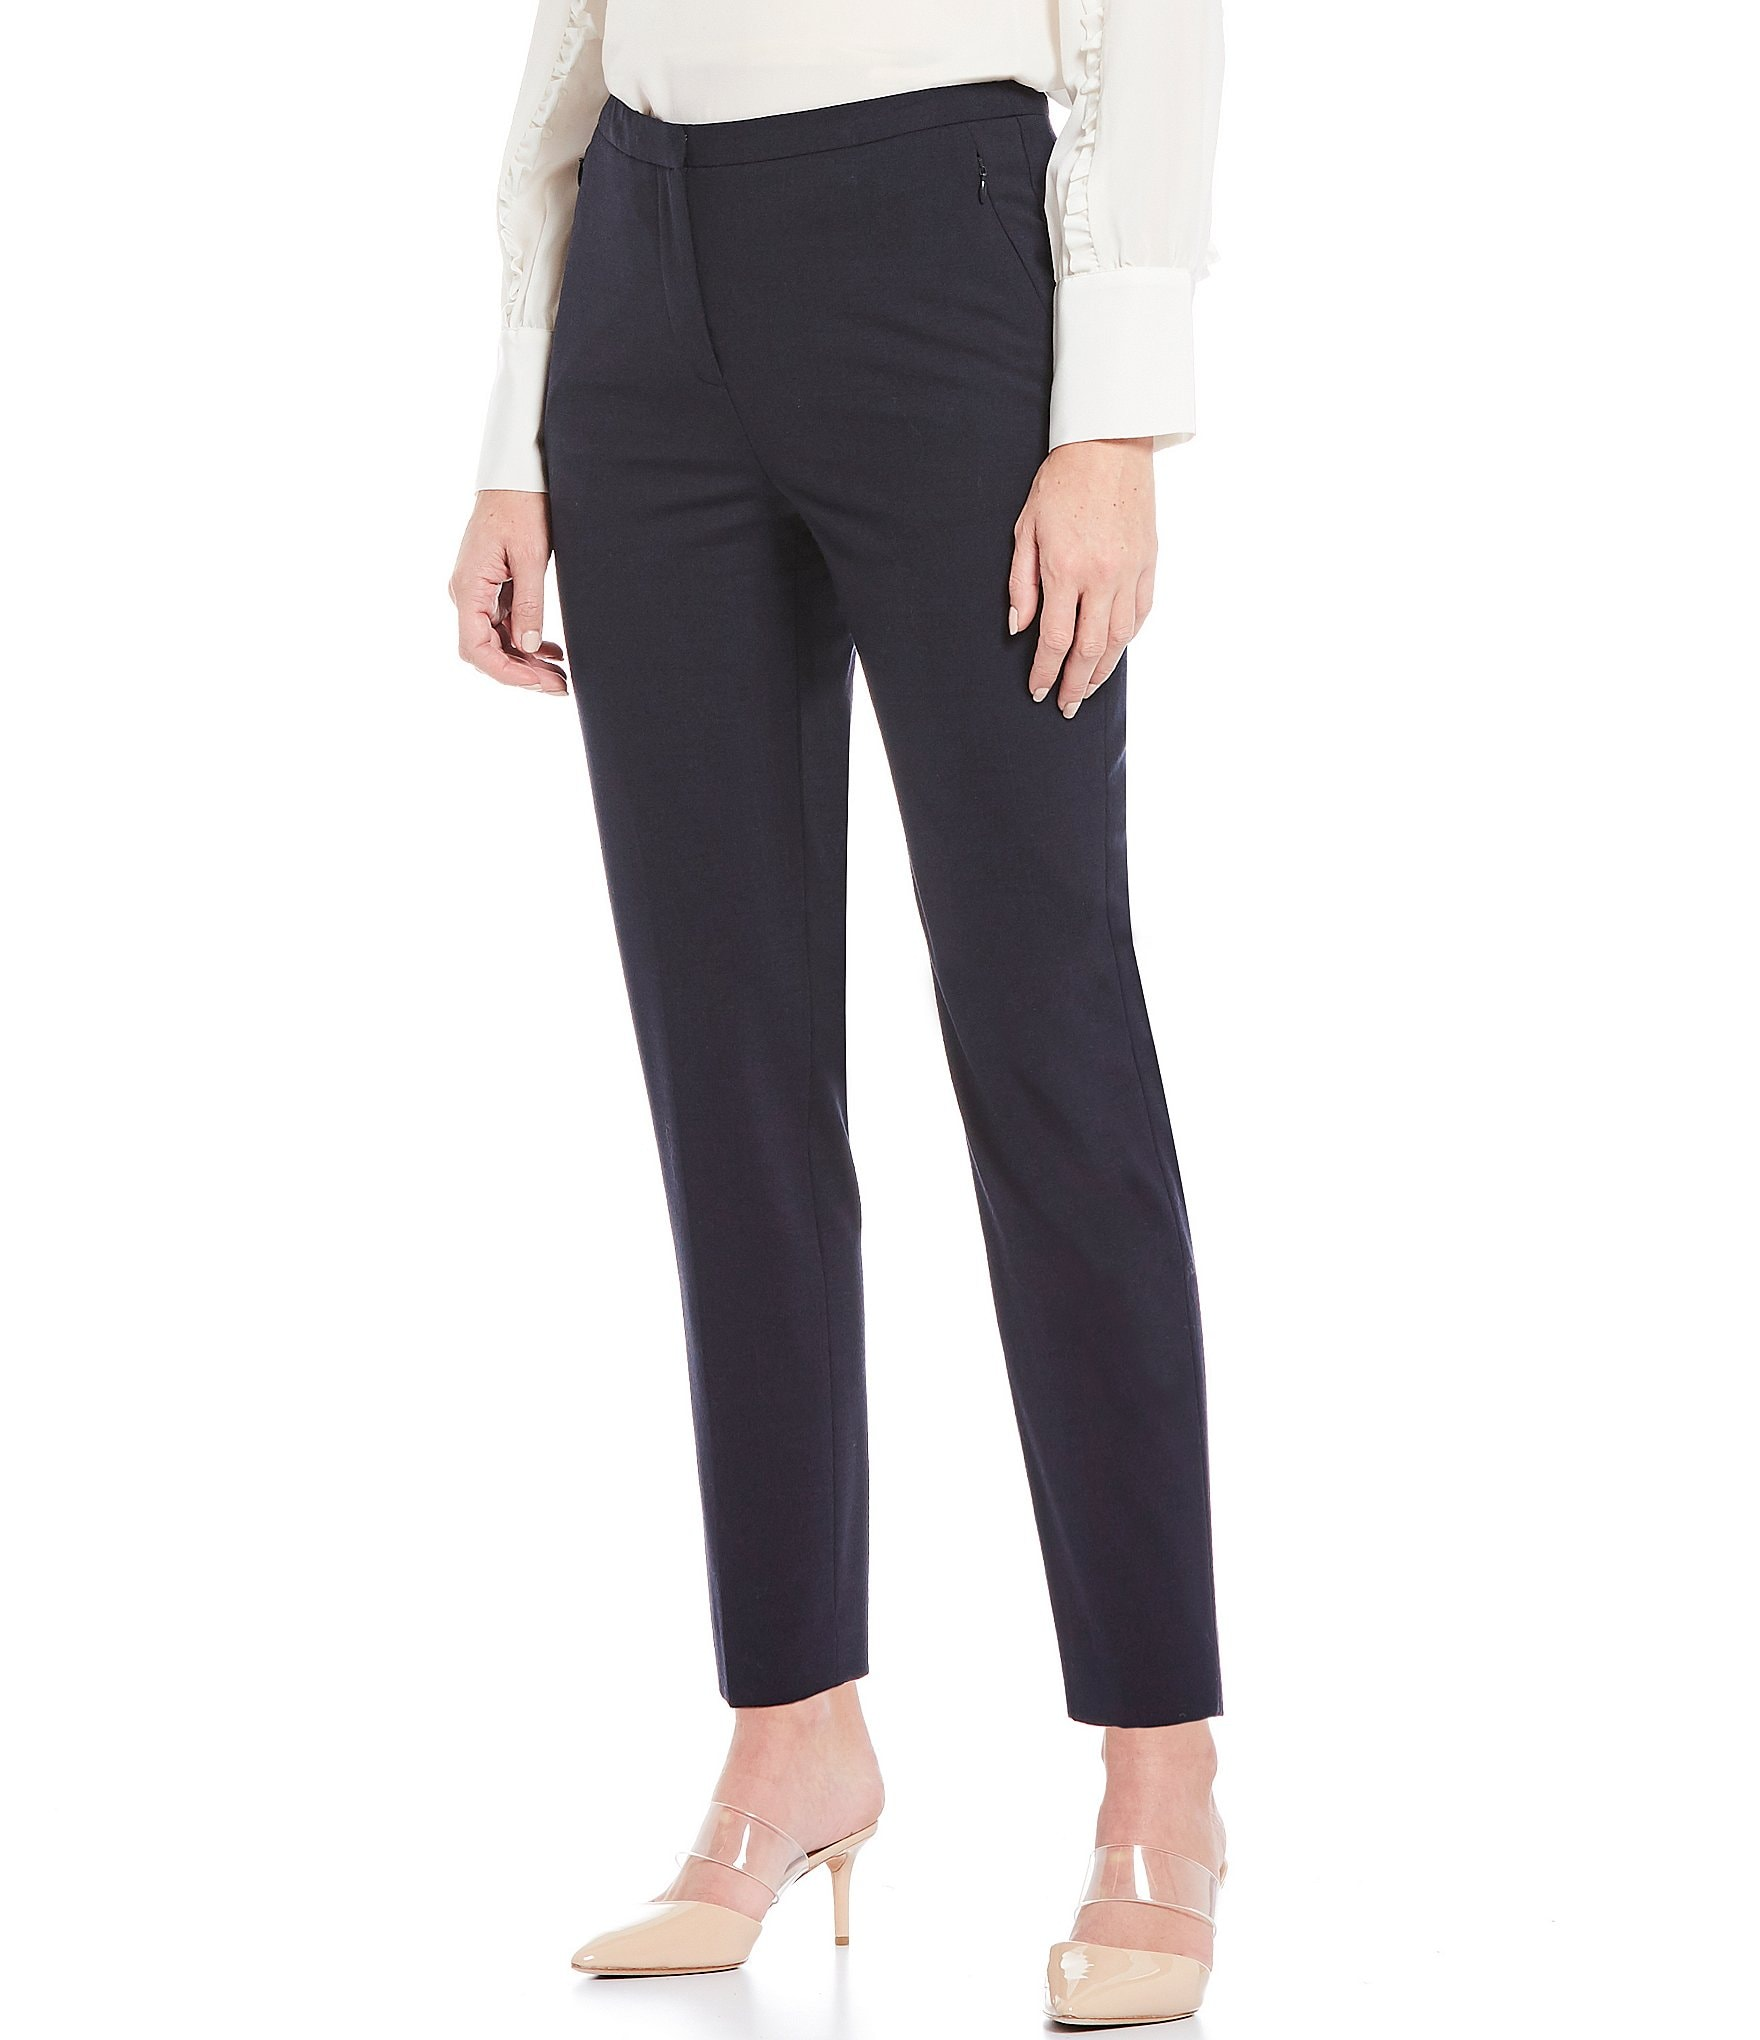 High waisted dress pants h&m